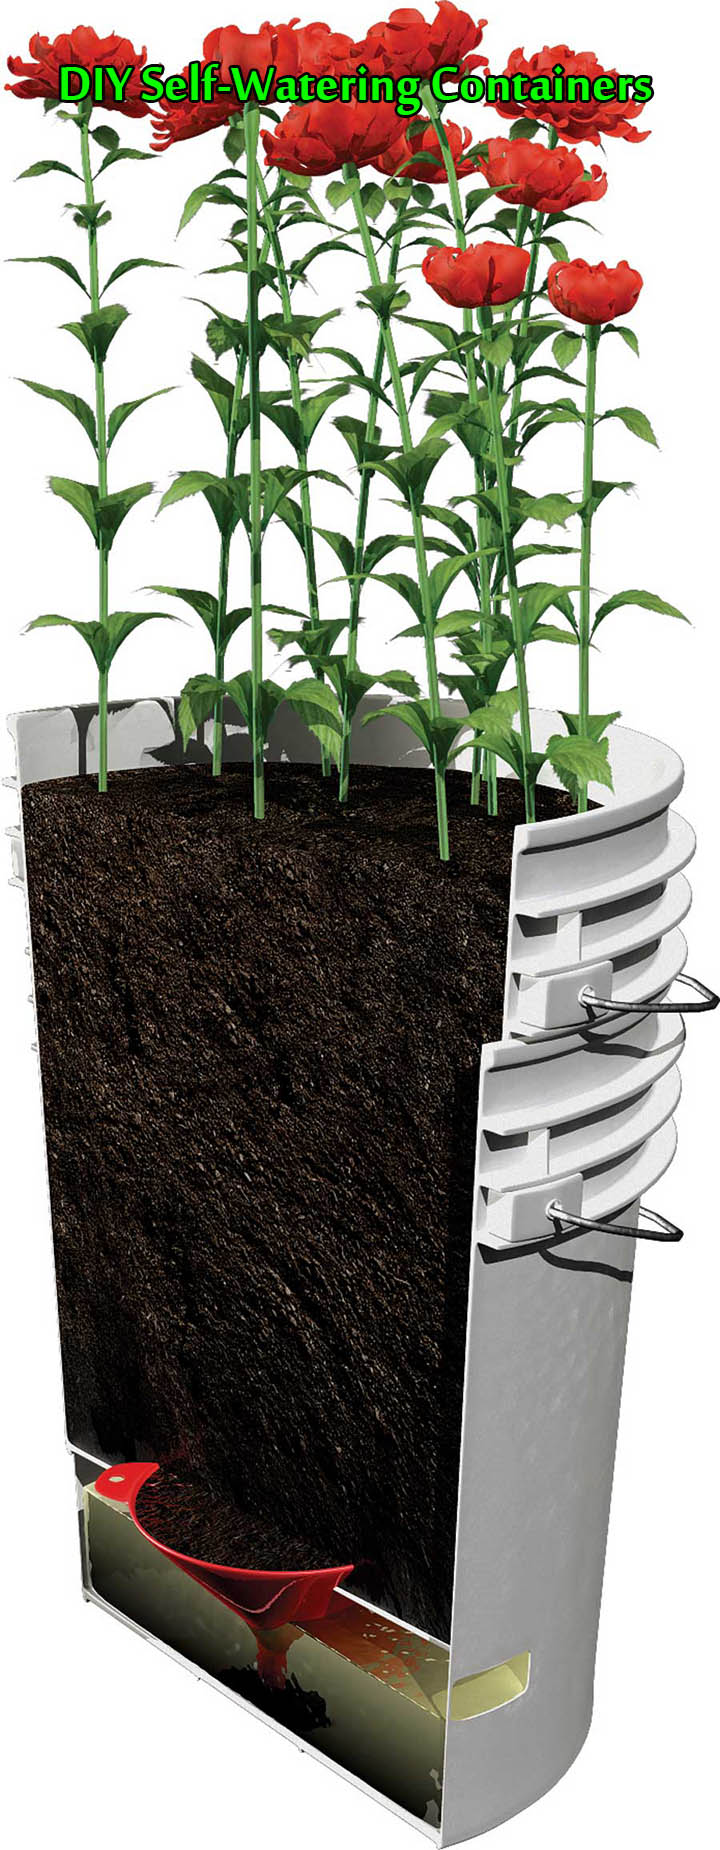 diy self watering containers. Black Bedroom Furniture Sets. Home Design Ideas